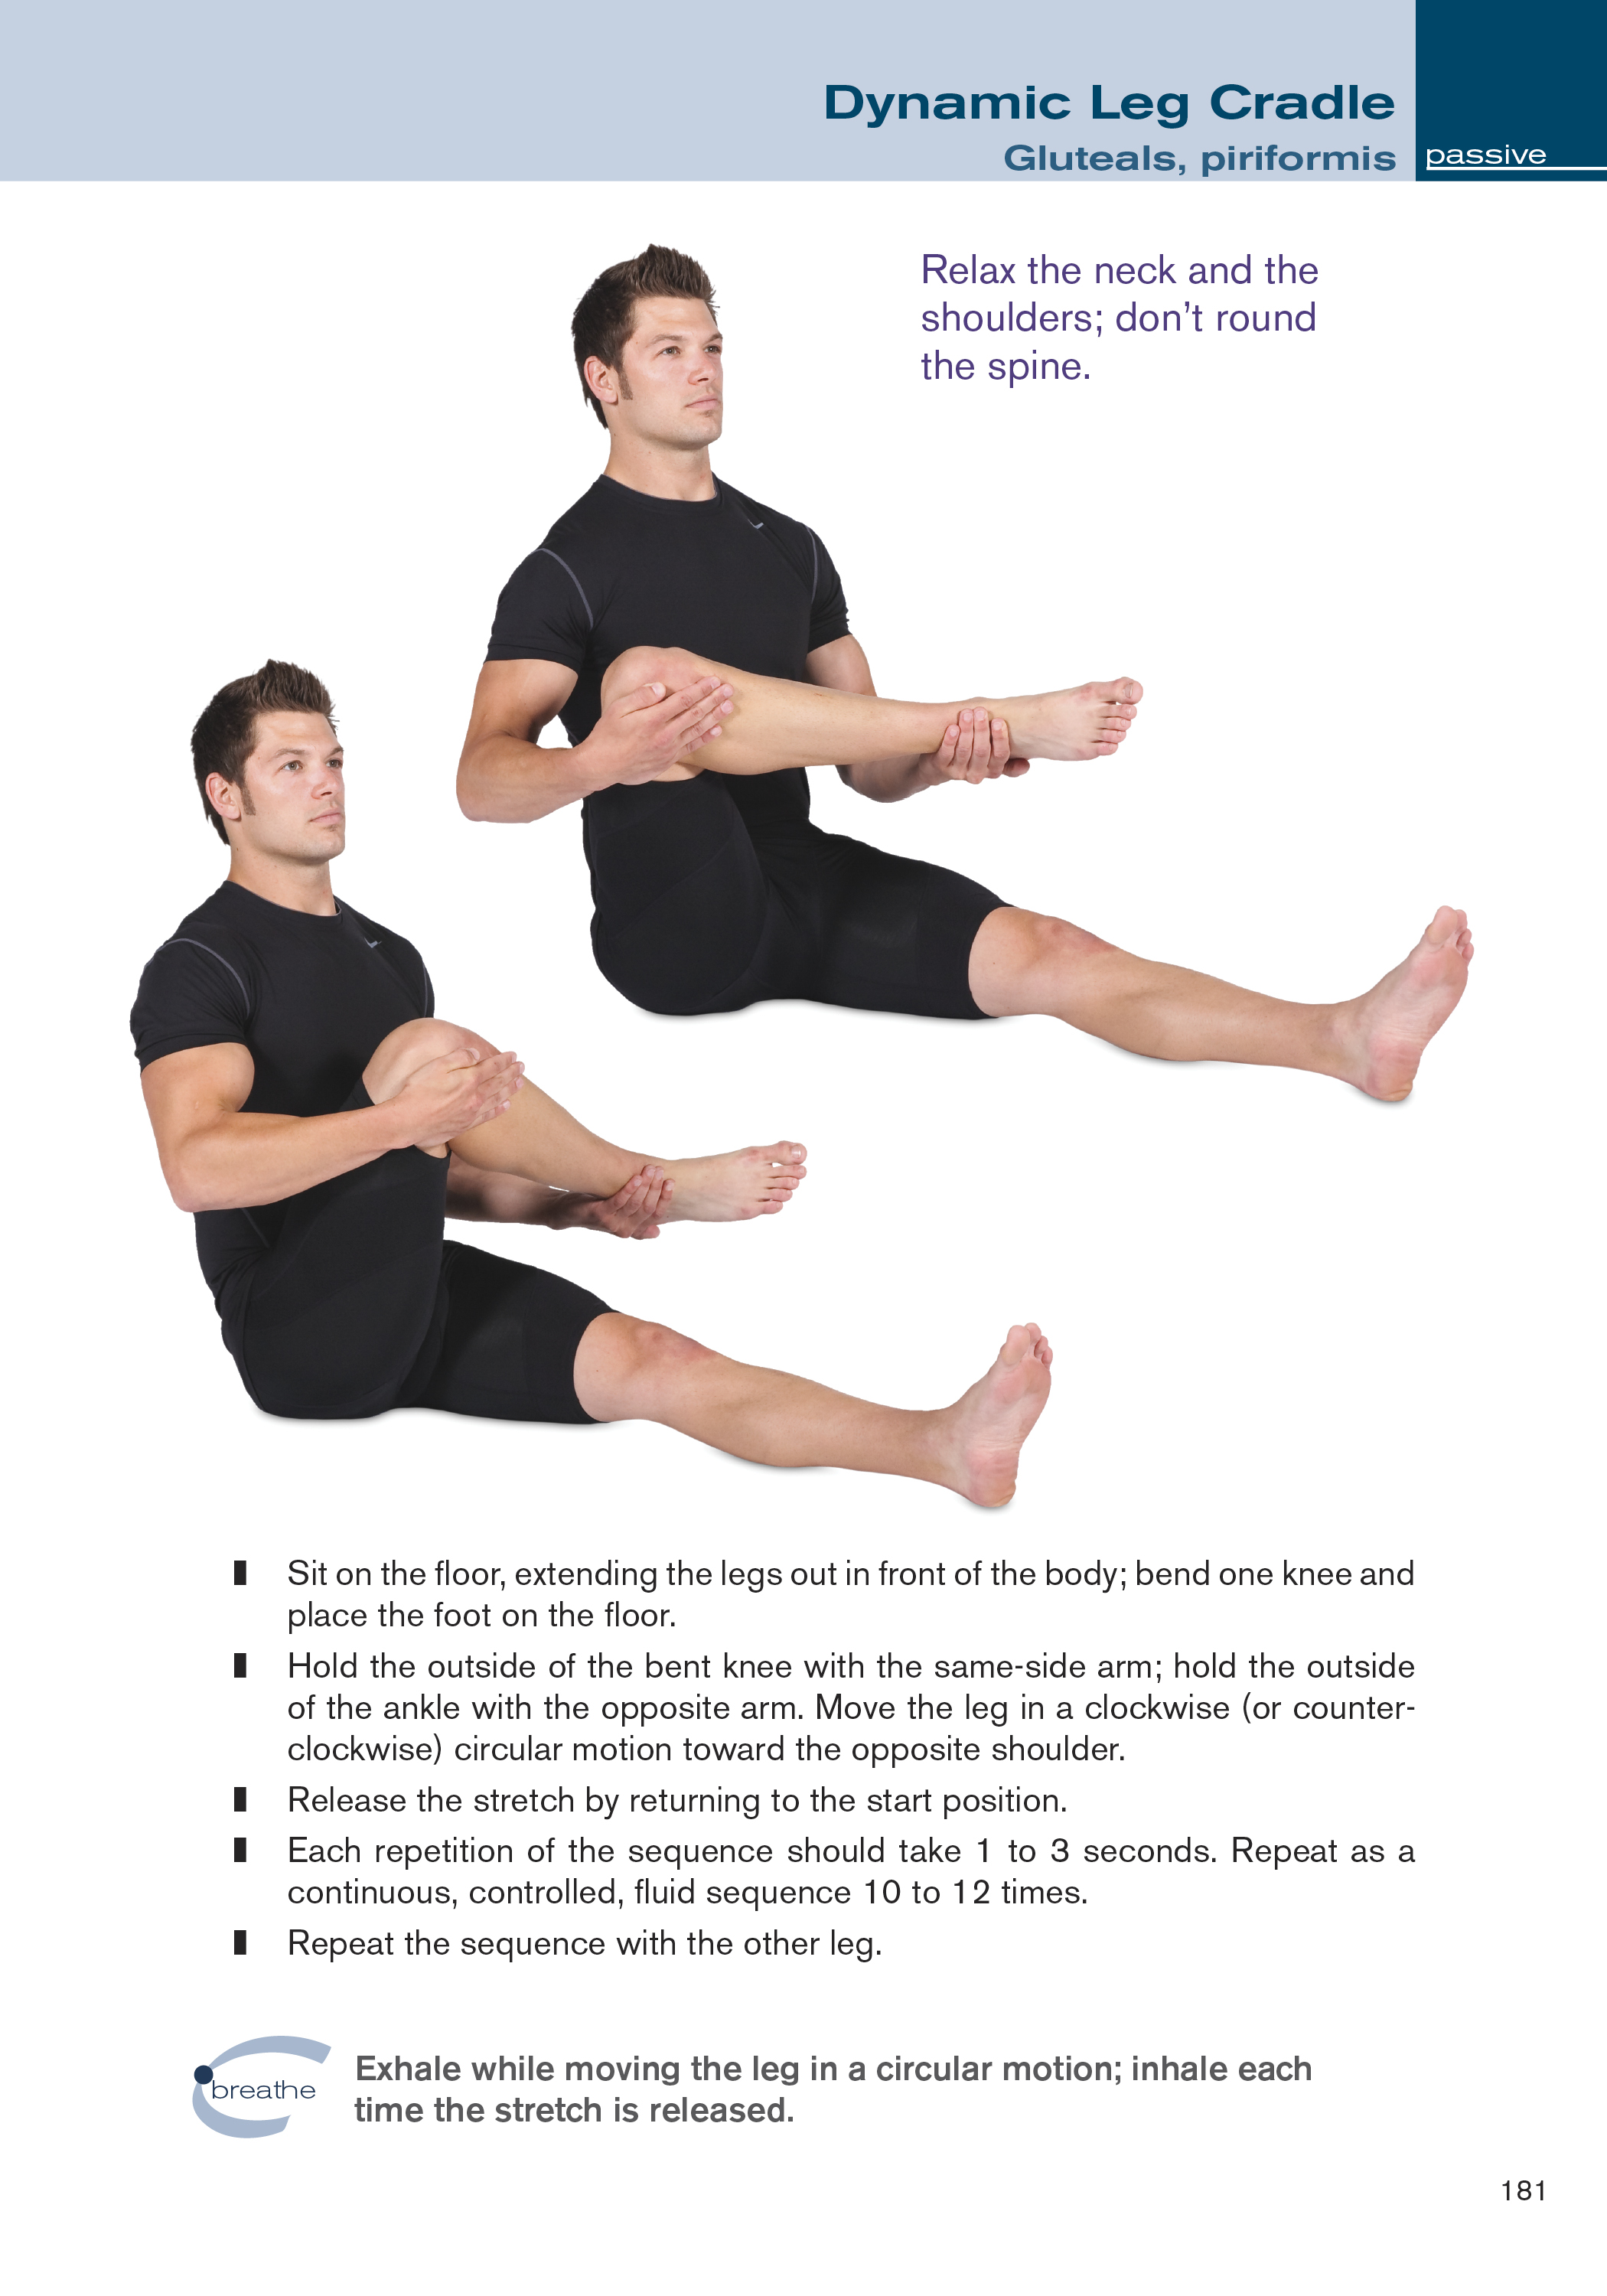 Dynamic leg cradle stretch